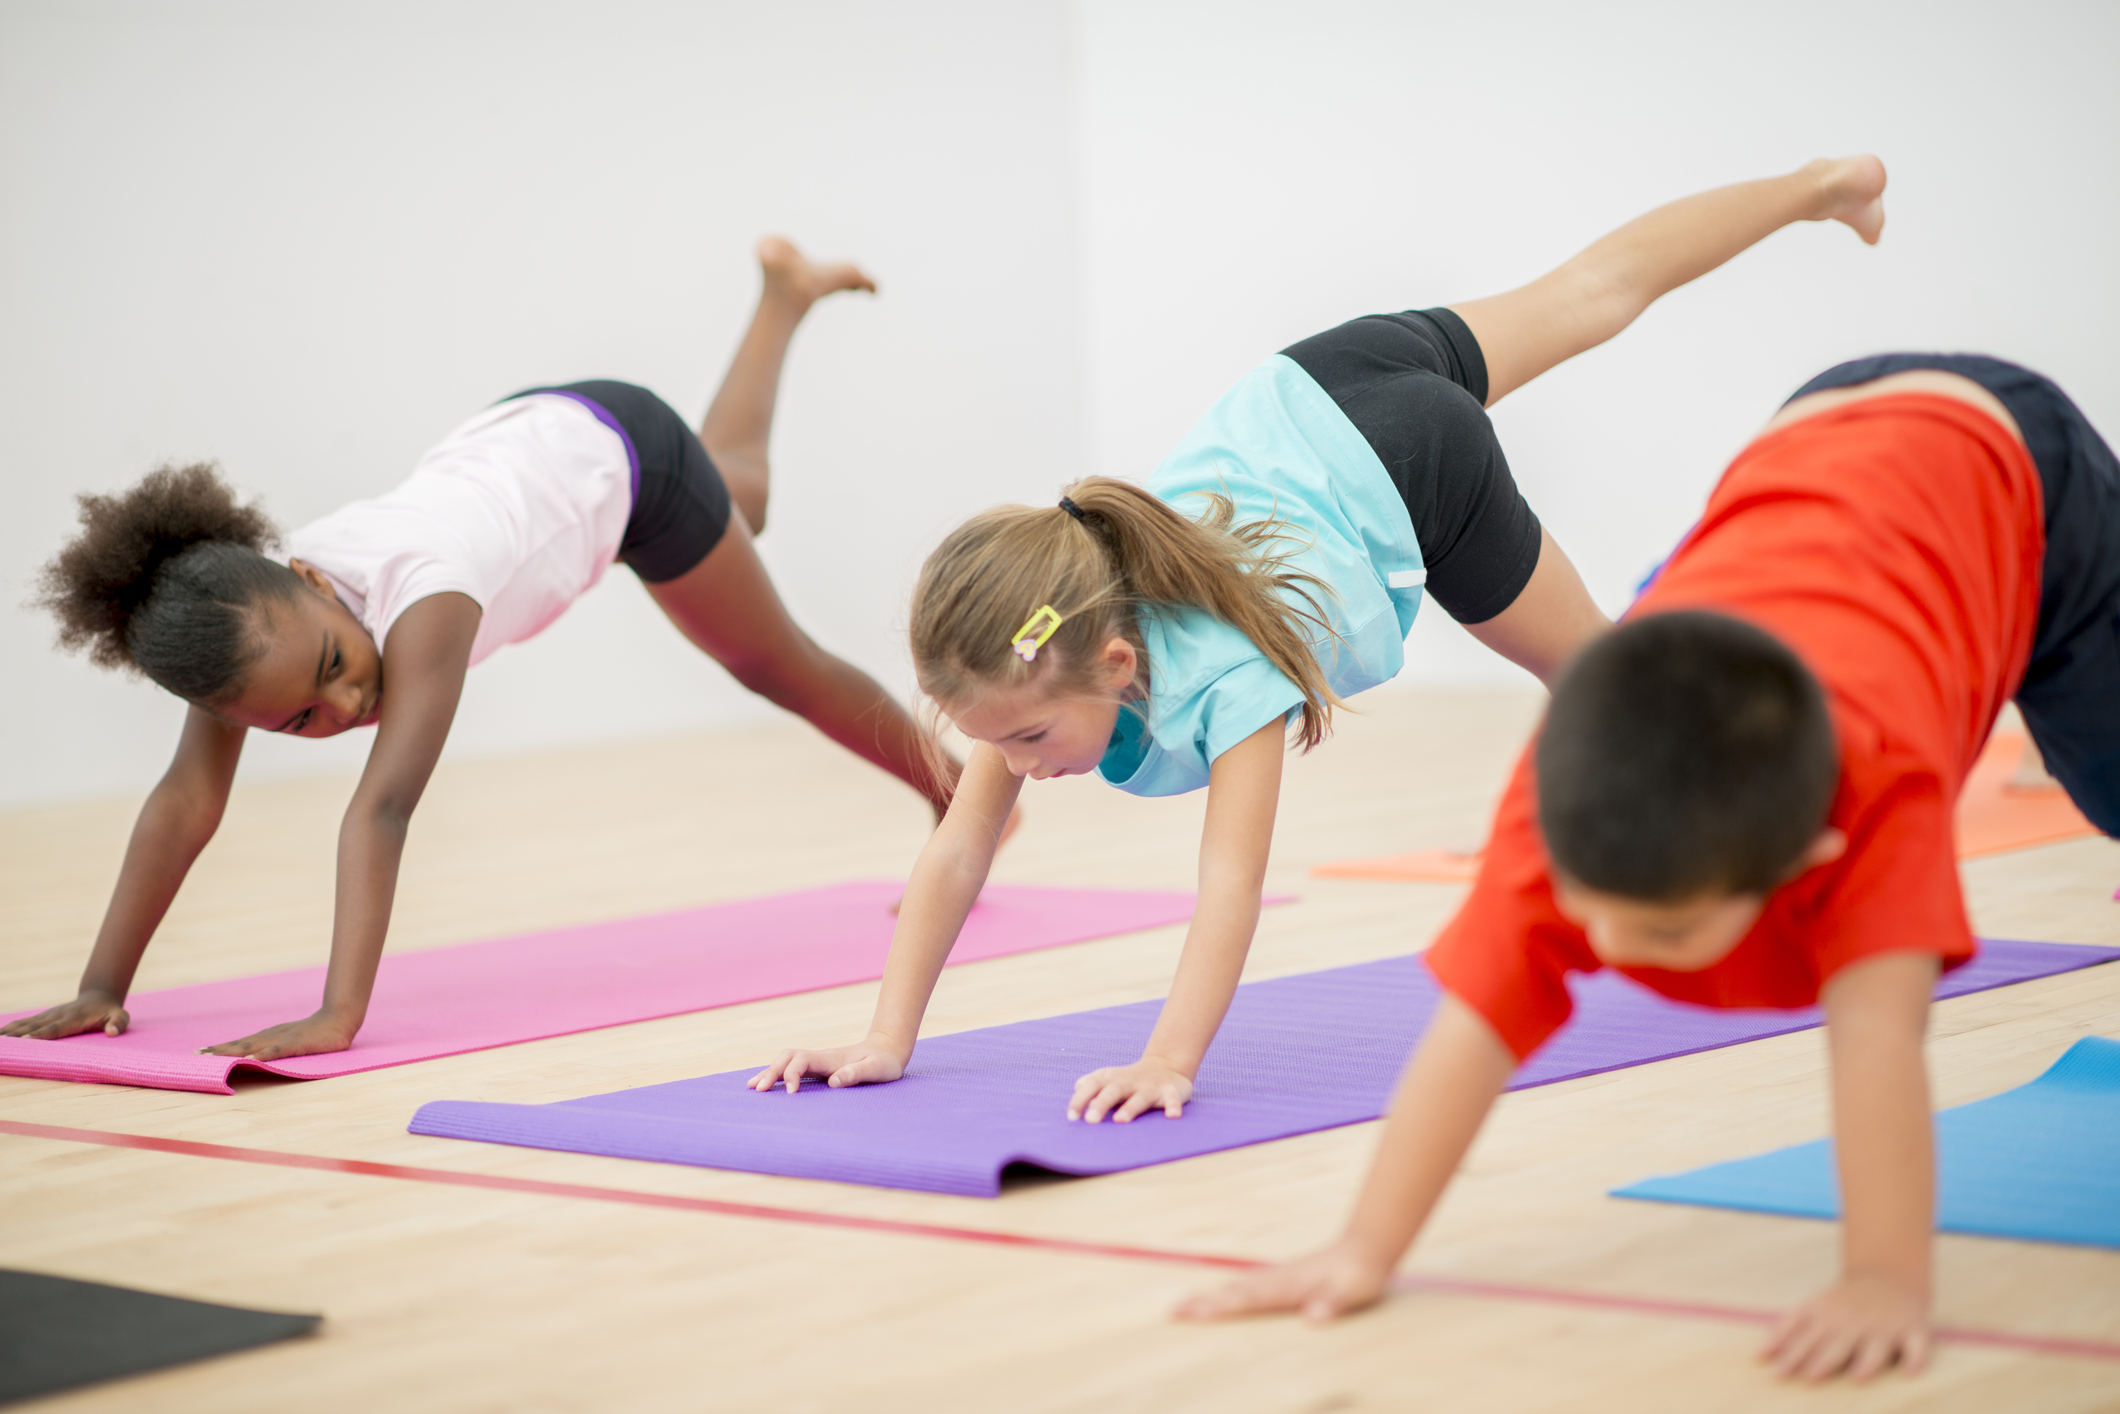 The benefits to group workout classes forecast